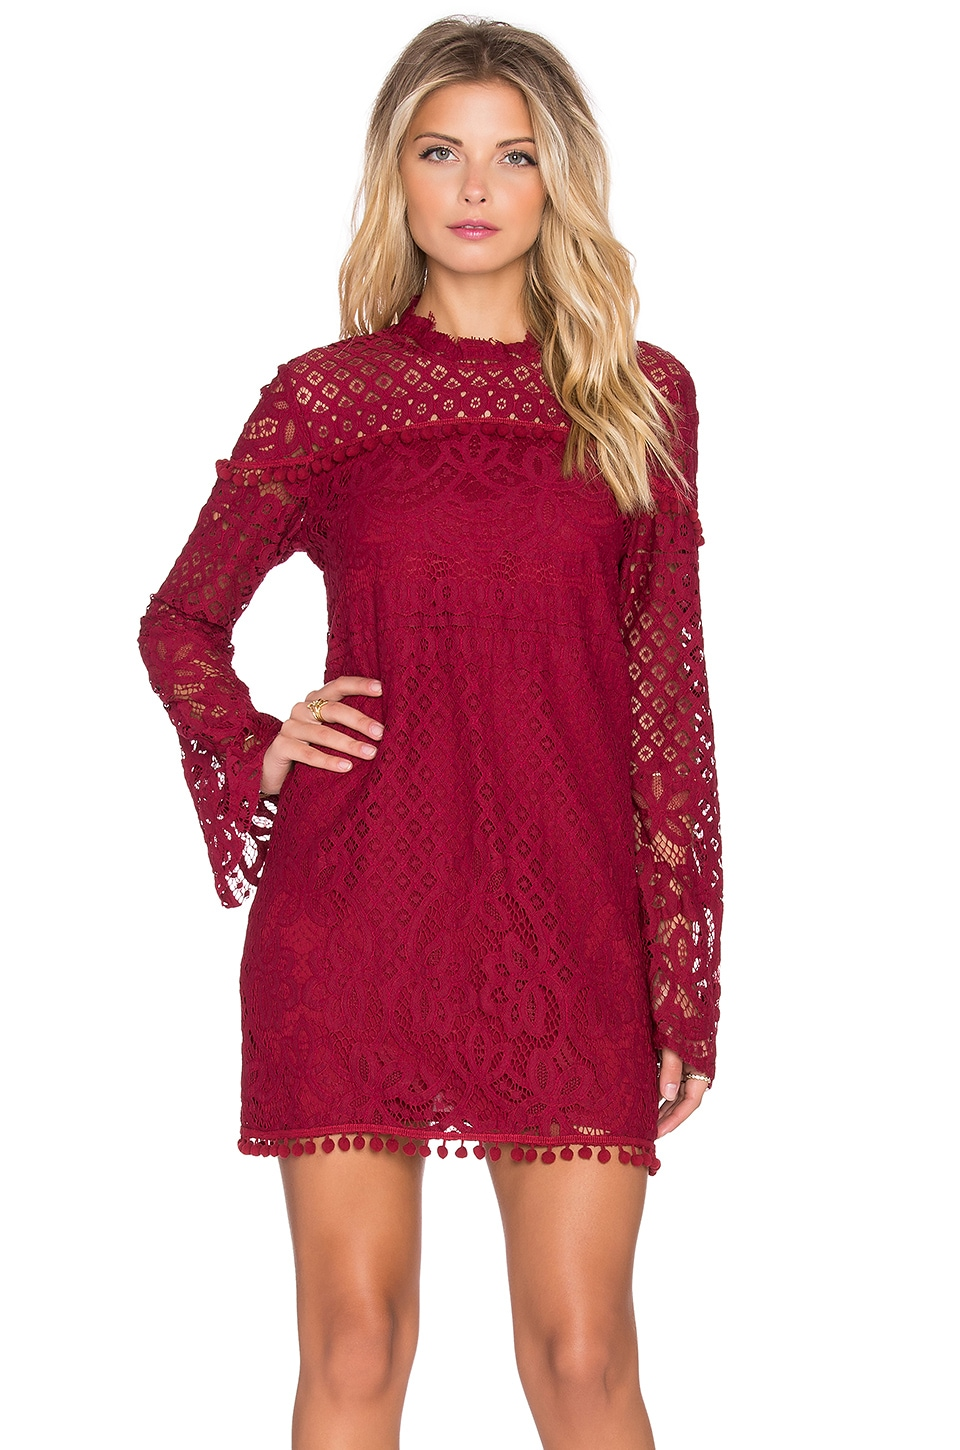 Tularosa x REVOLVE Matilda Lace Dress in Wine